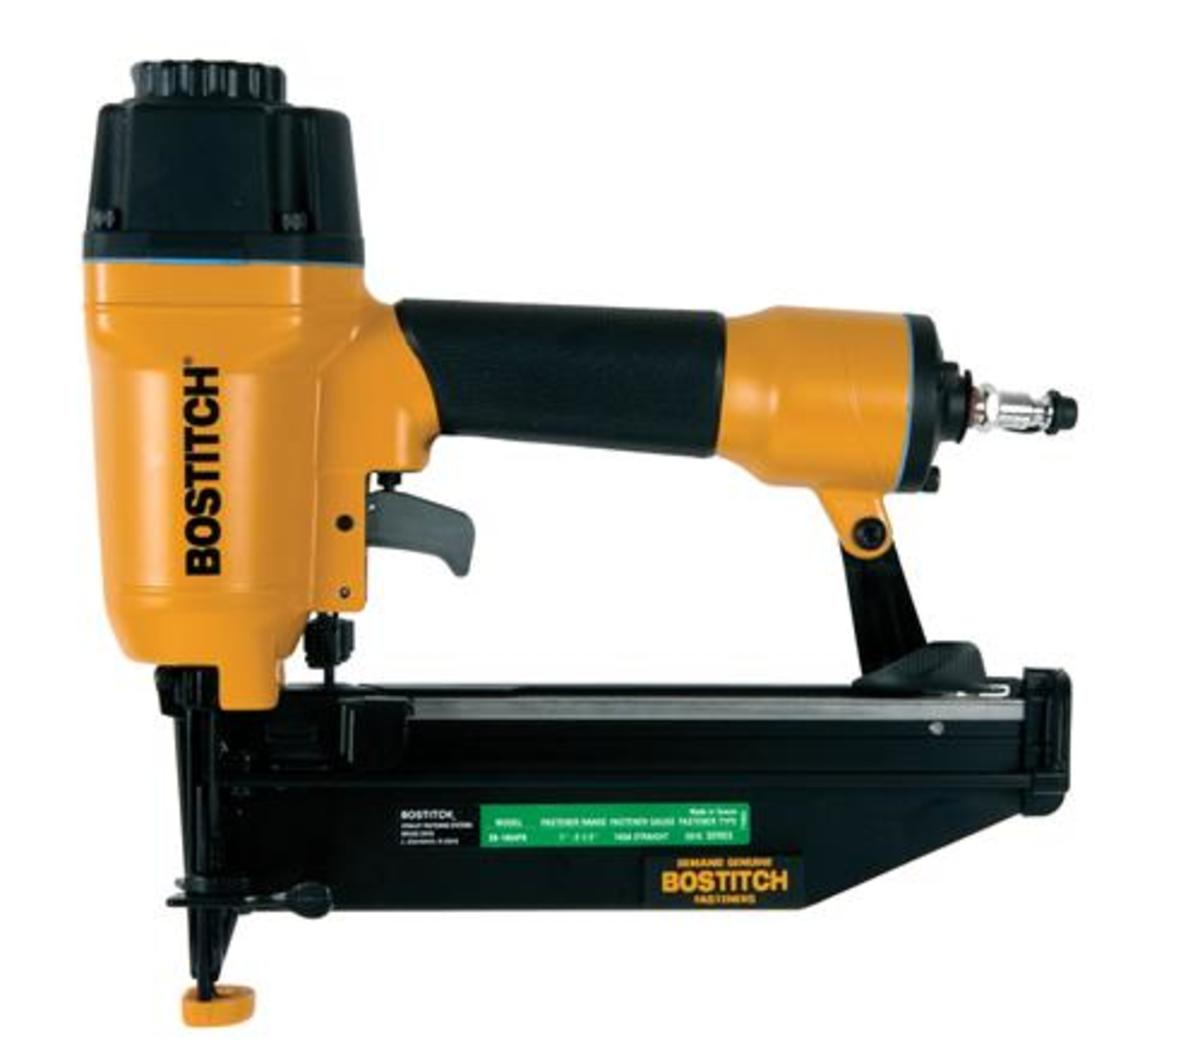 Differences Between Gas-Powered Nailers and Air or Pneumatic Nail Guns